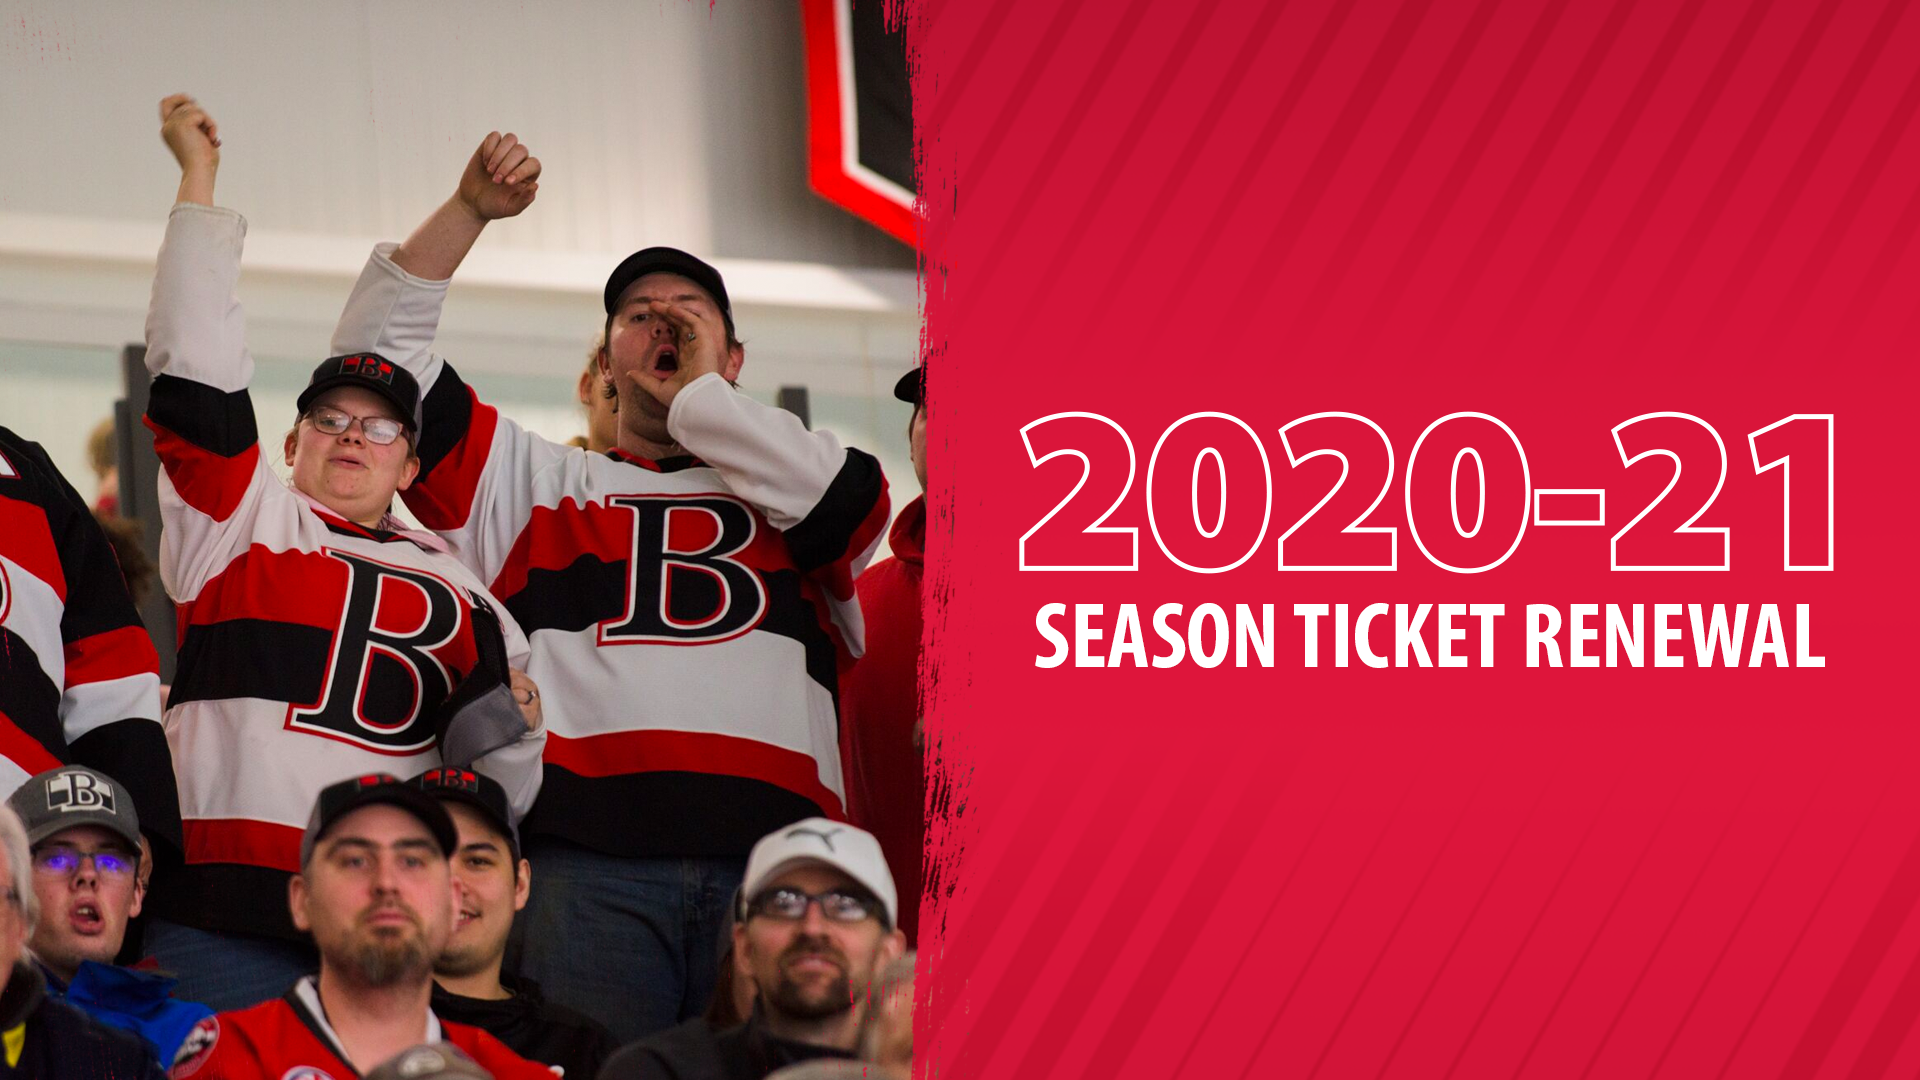 Season Ticket Renewal Header